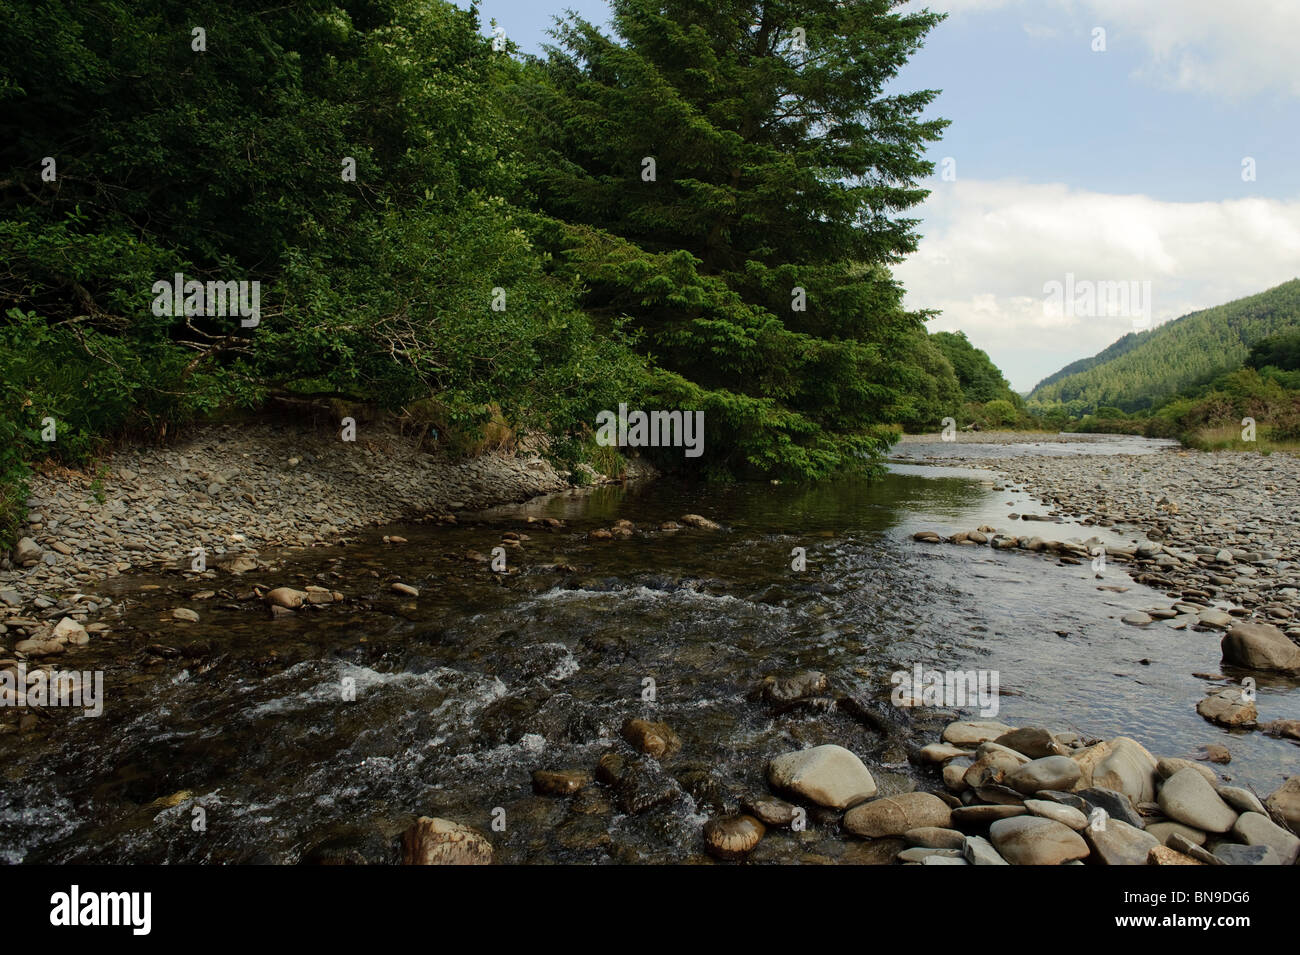 The Grogwynion SSSI (Site of special scientific interest) on the river Ystwyth, inland from Aberystwyth, Ceredigion, - Stock Image